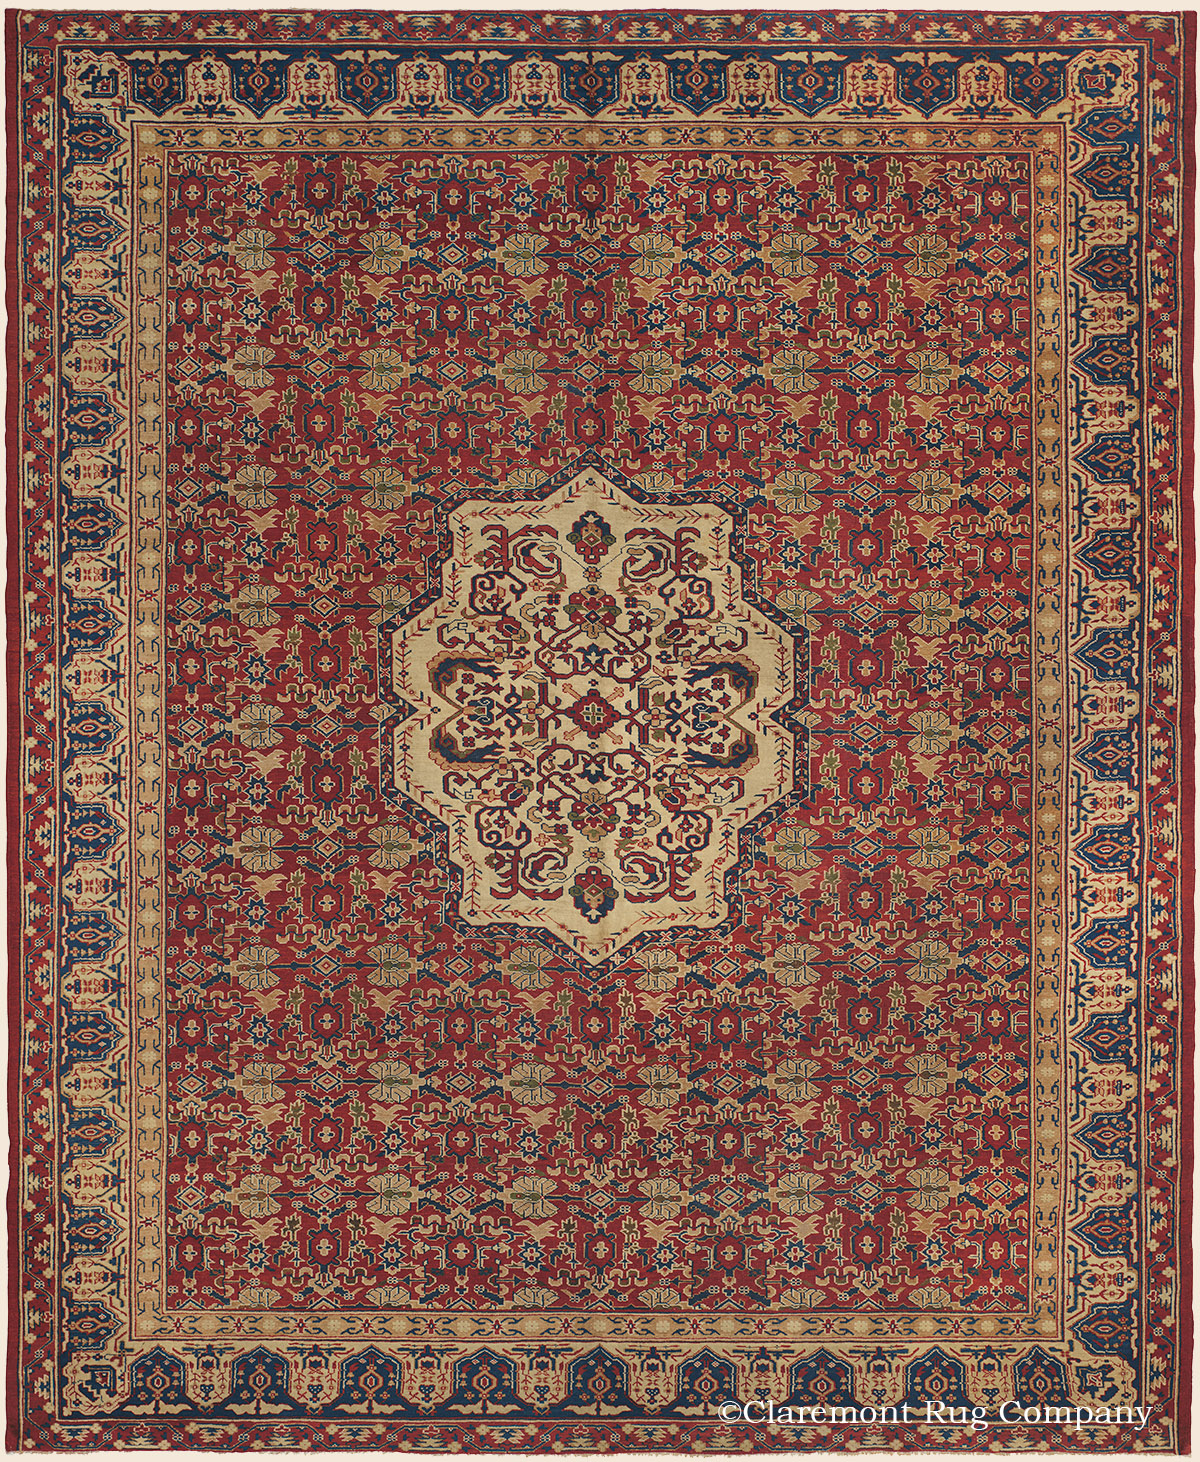 Asian Carpet Samarkand Central Asian Antique Rug Claremont Rug Company